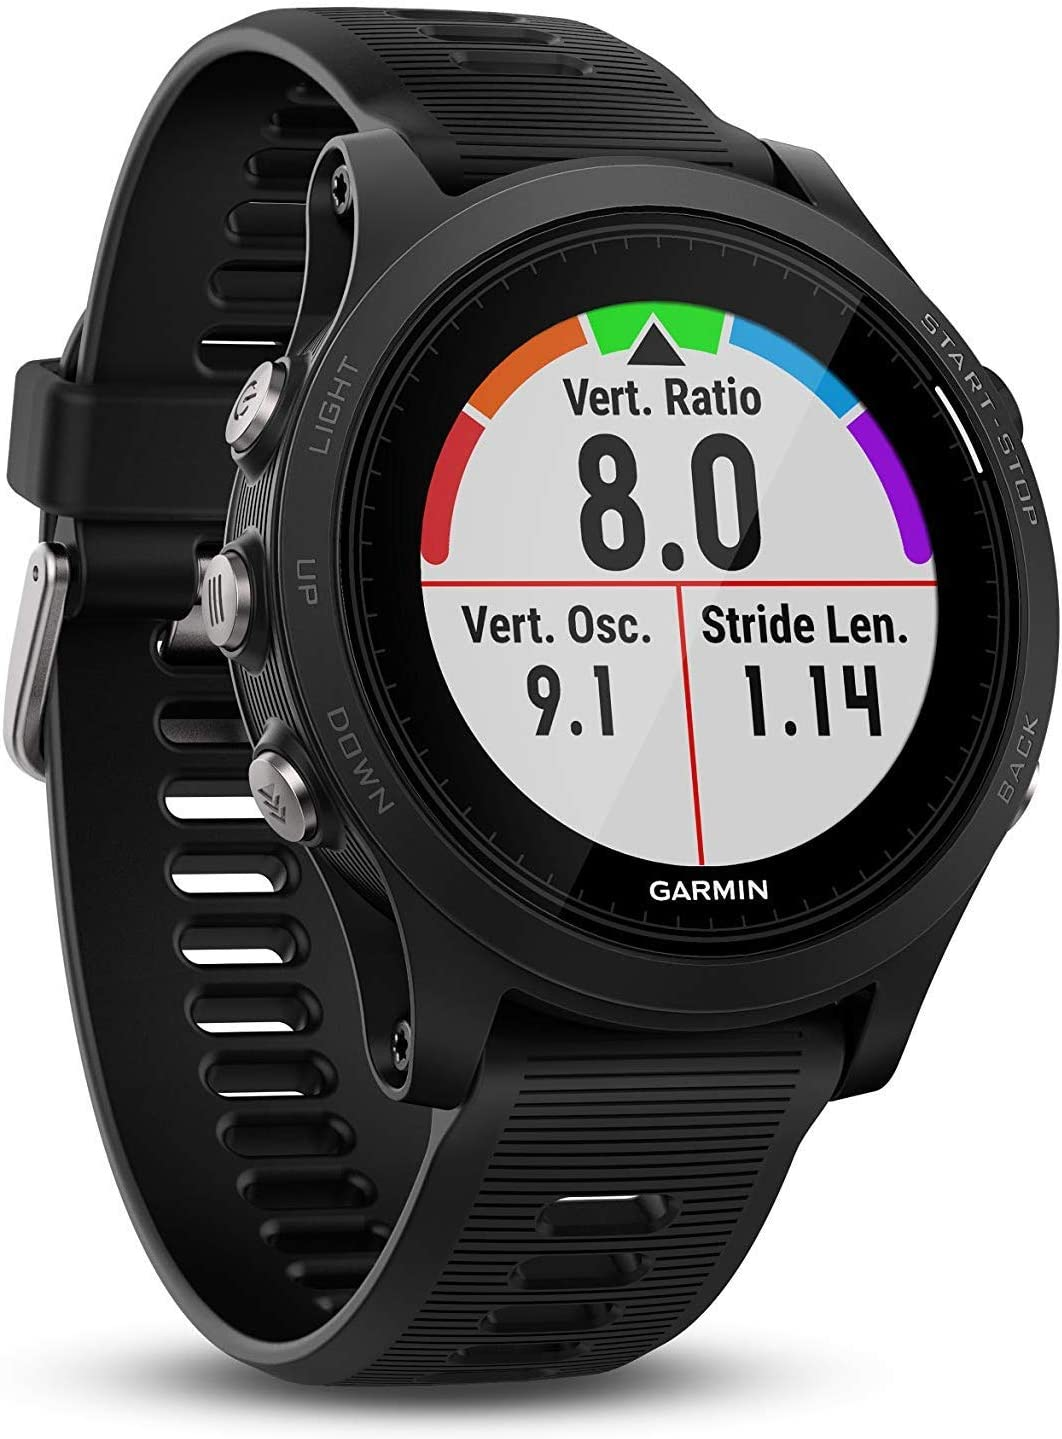 Garmin Forerunner 935 Sleek Sport Watch Running GPS Unit -Black Renewed